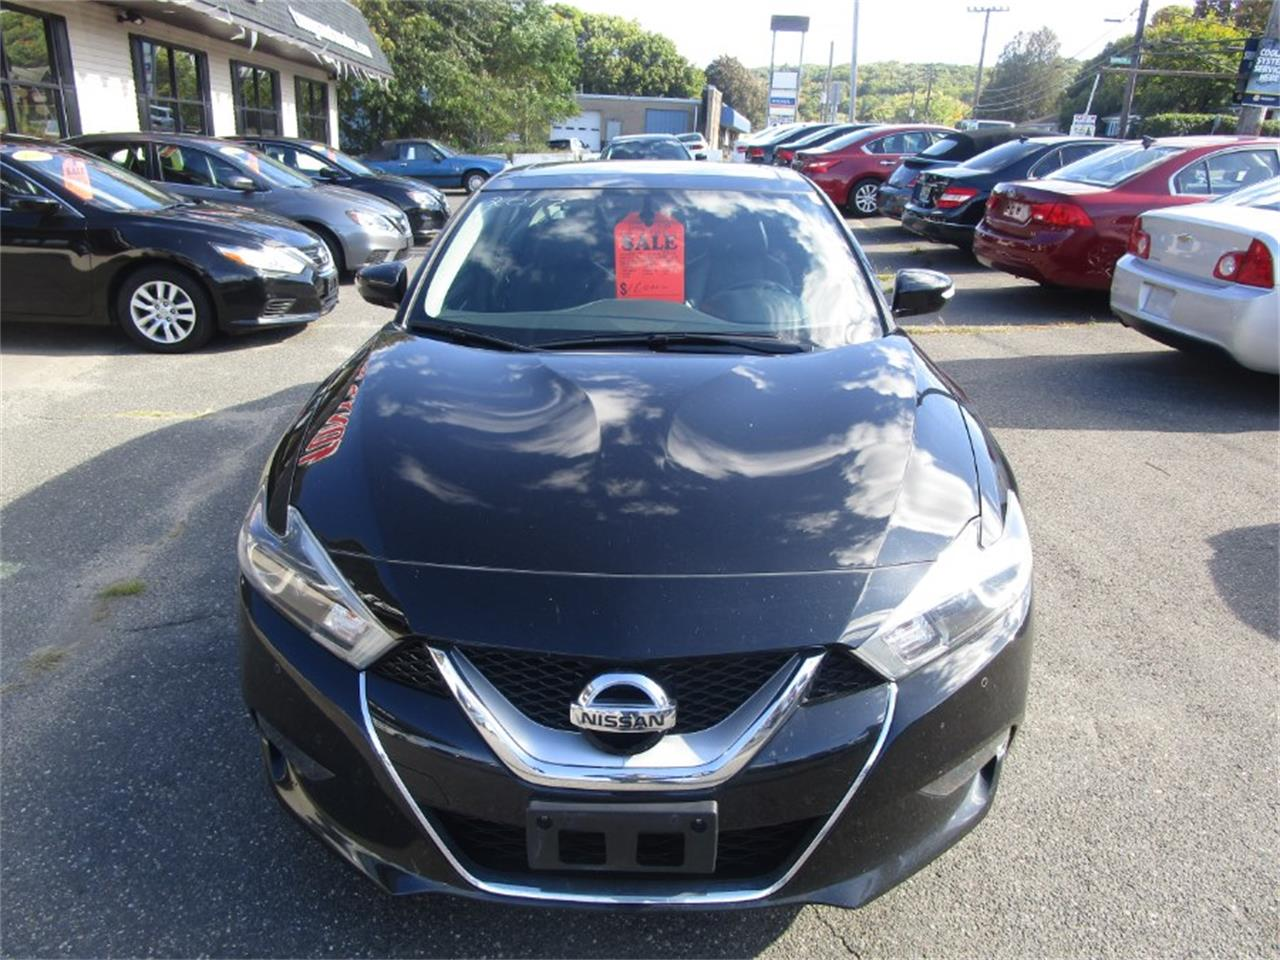 2017 Nissan Maxima (CC-1294508) for sale in Waterbury, Connecticut